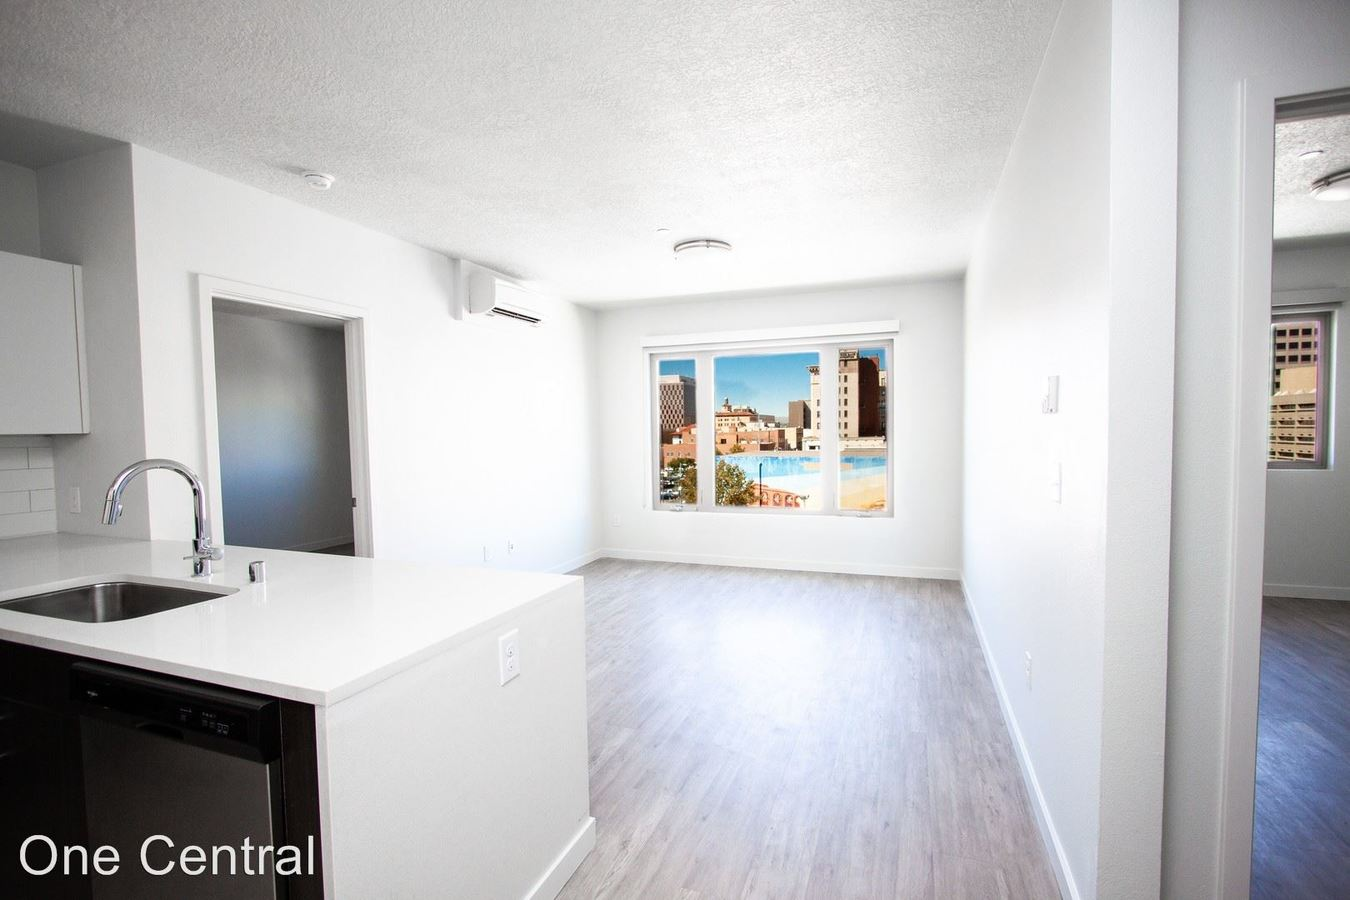 Marvelous 1 Central Ave Nw Albuquerque Nm Apartment For Rent Interior Design Ideas Skatsoteloinfo